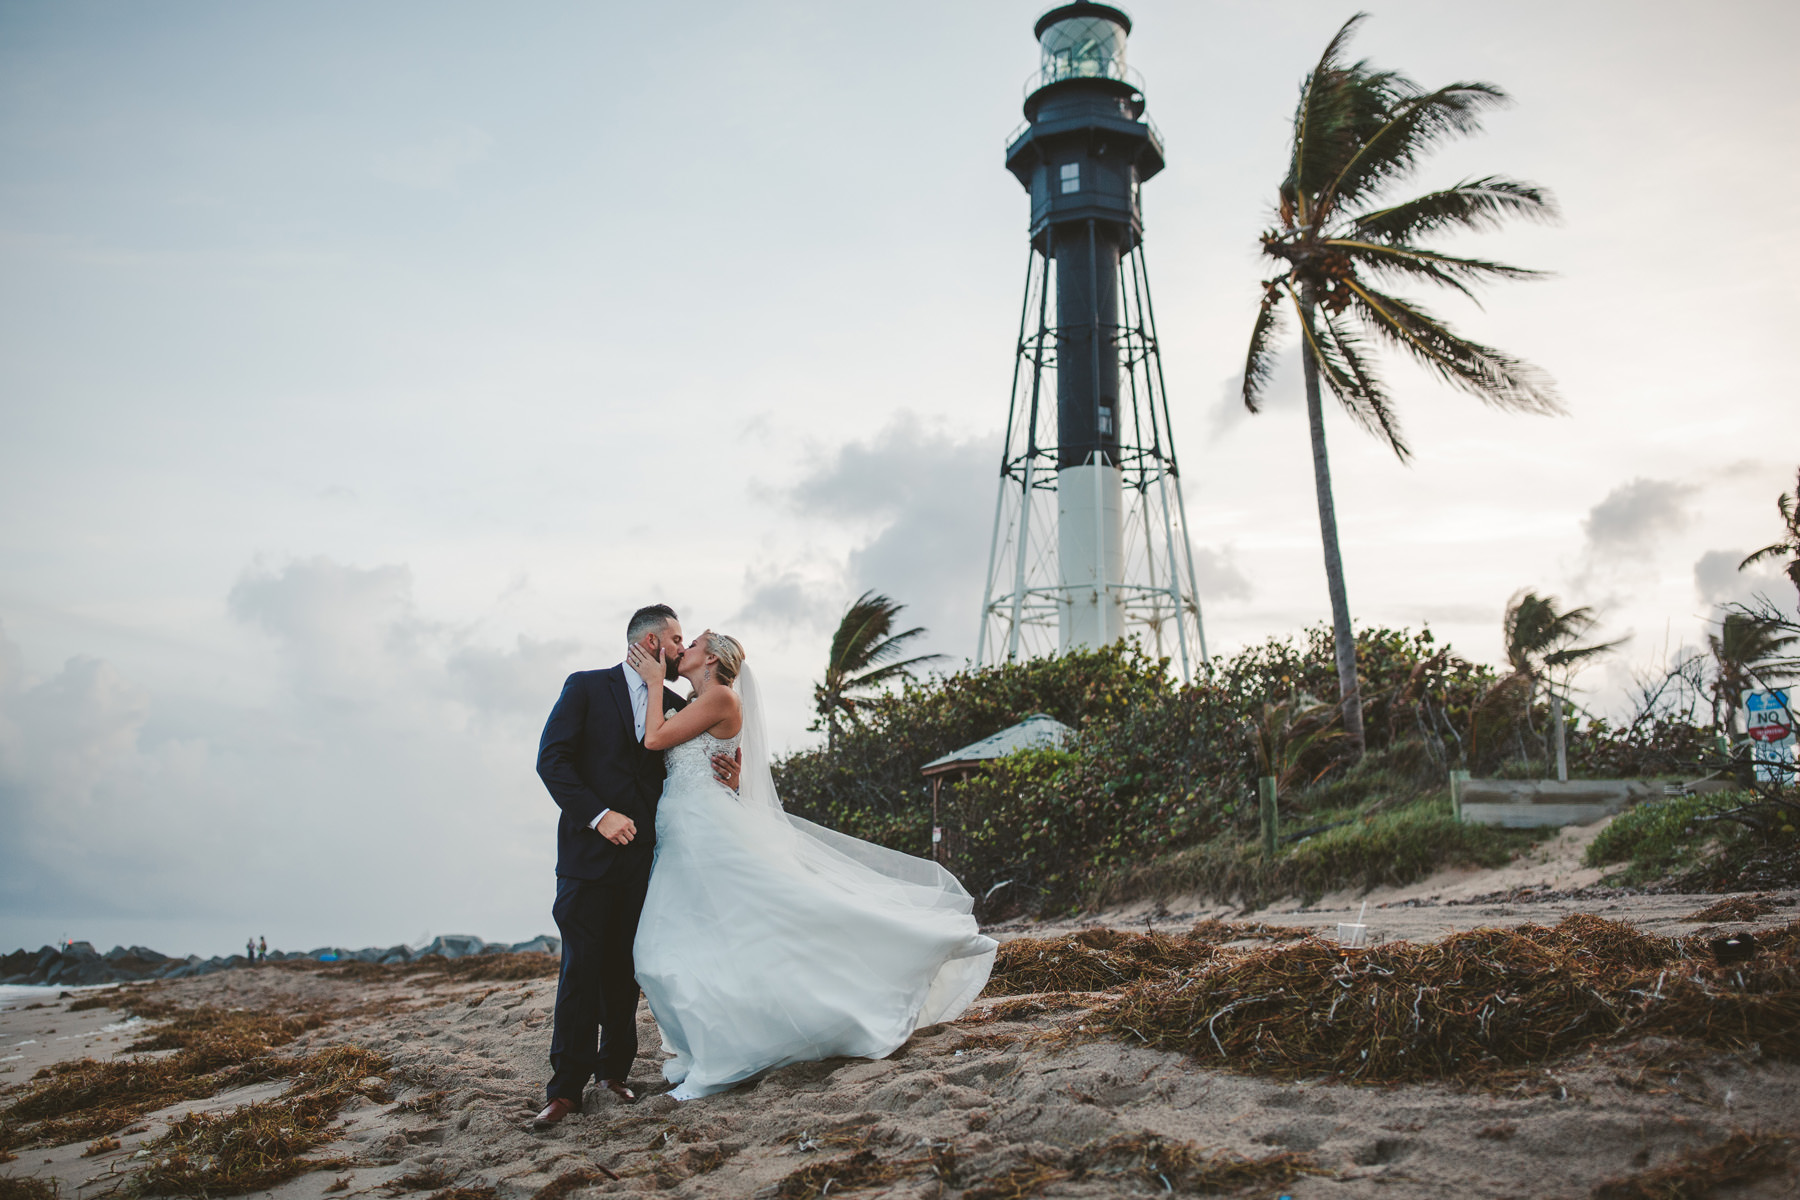 romantic-beach-wedding-hillsboro-lighthouse-tiny-house-photo-florida.jpg